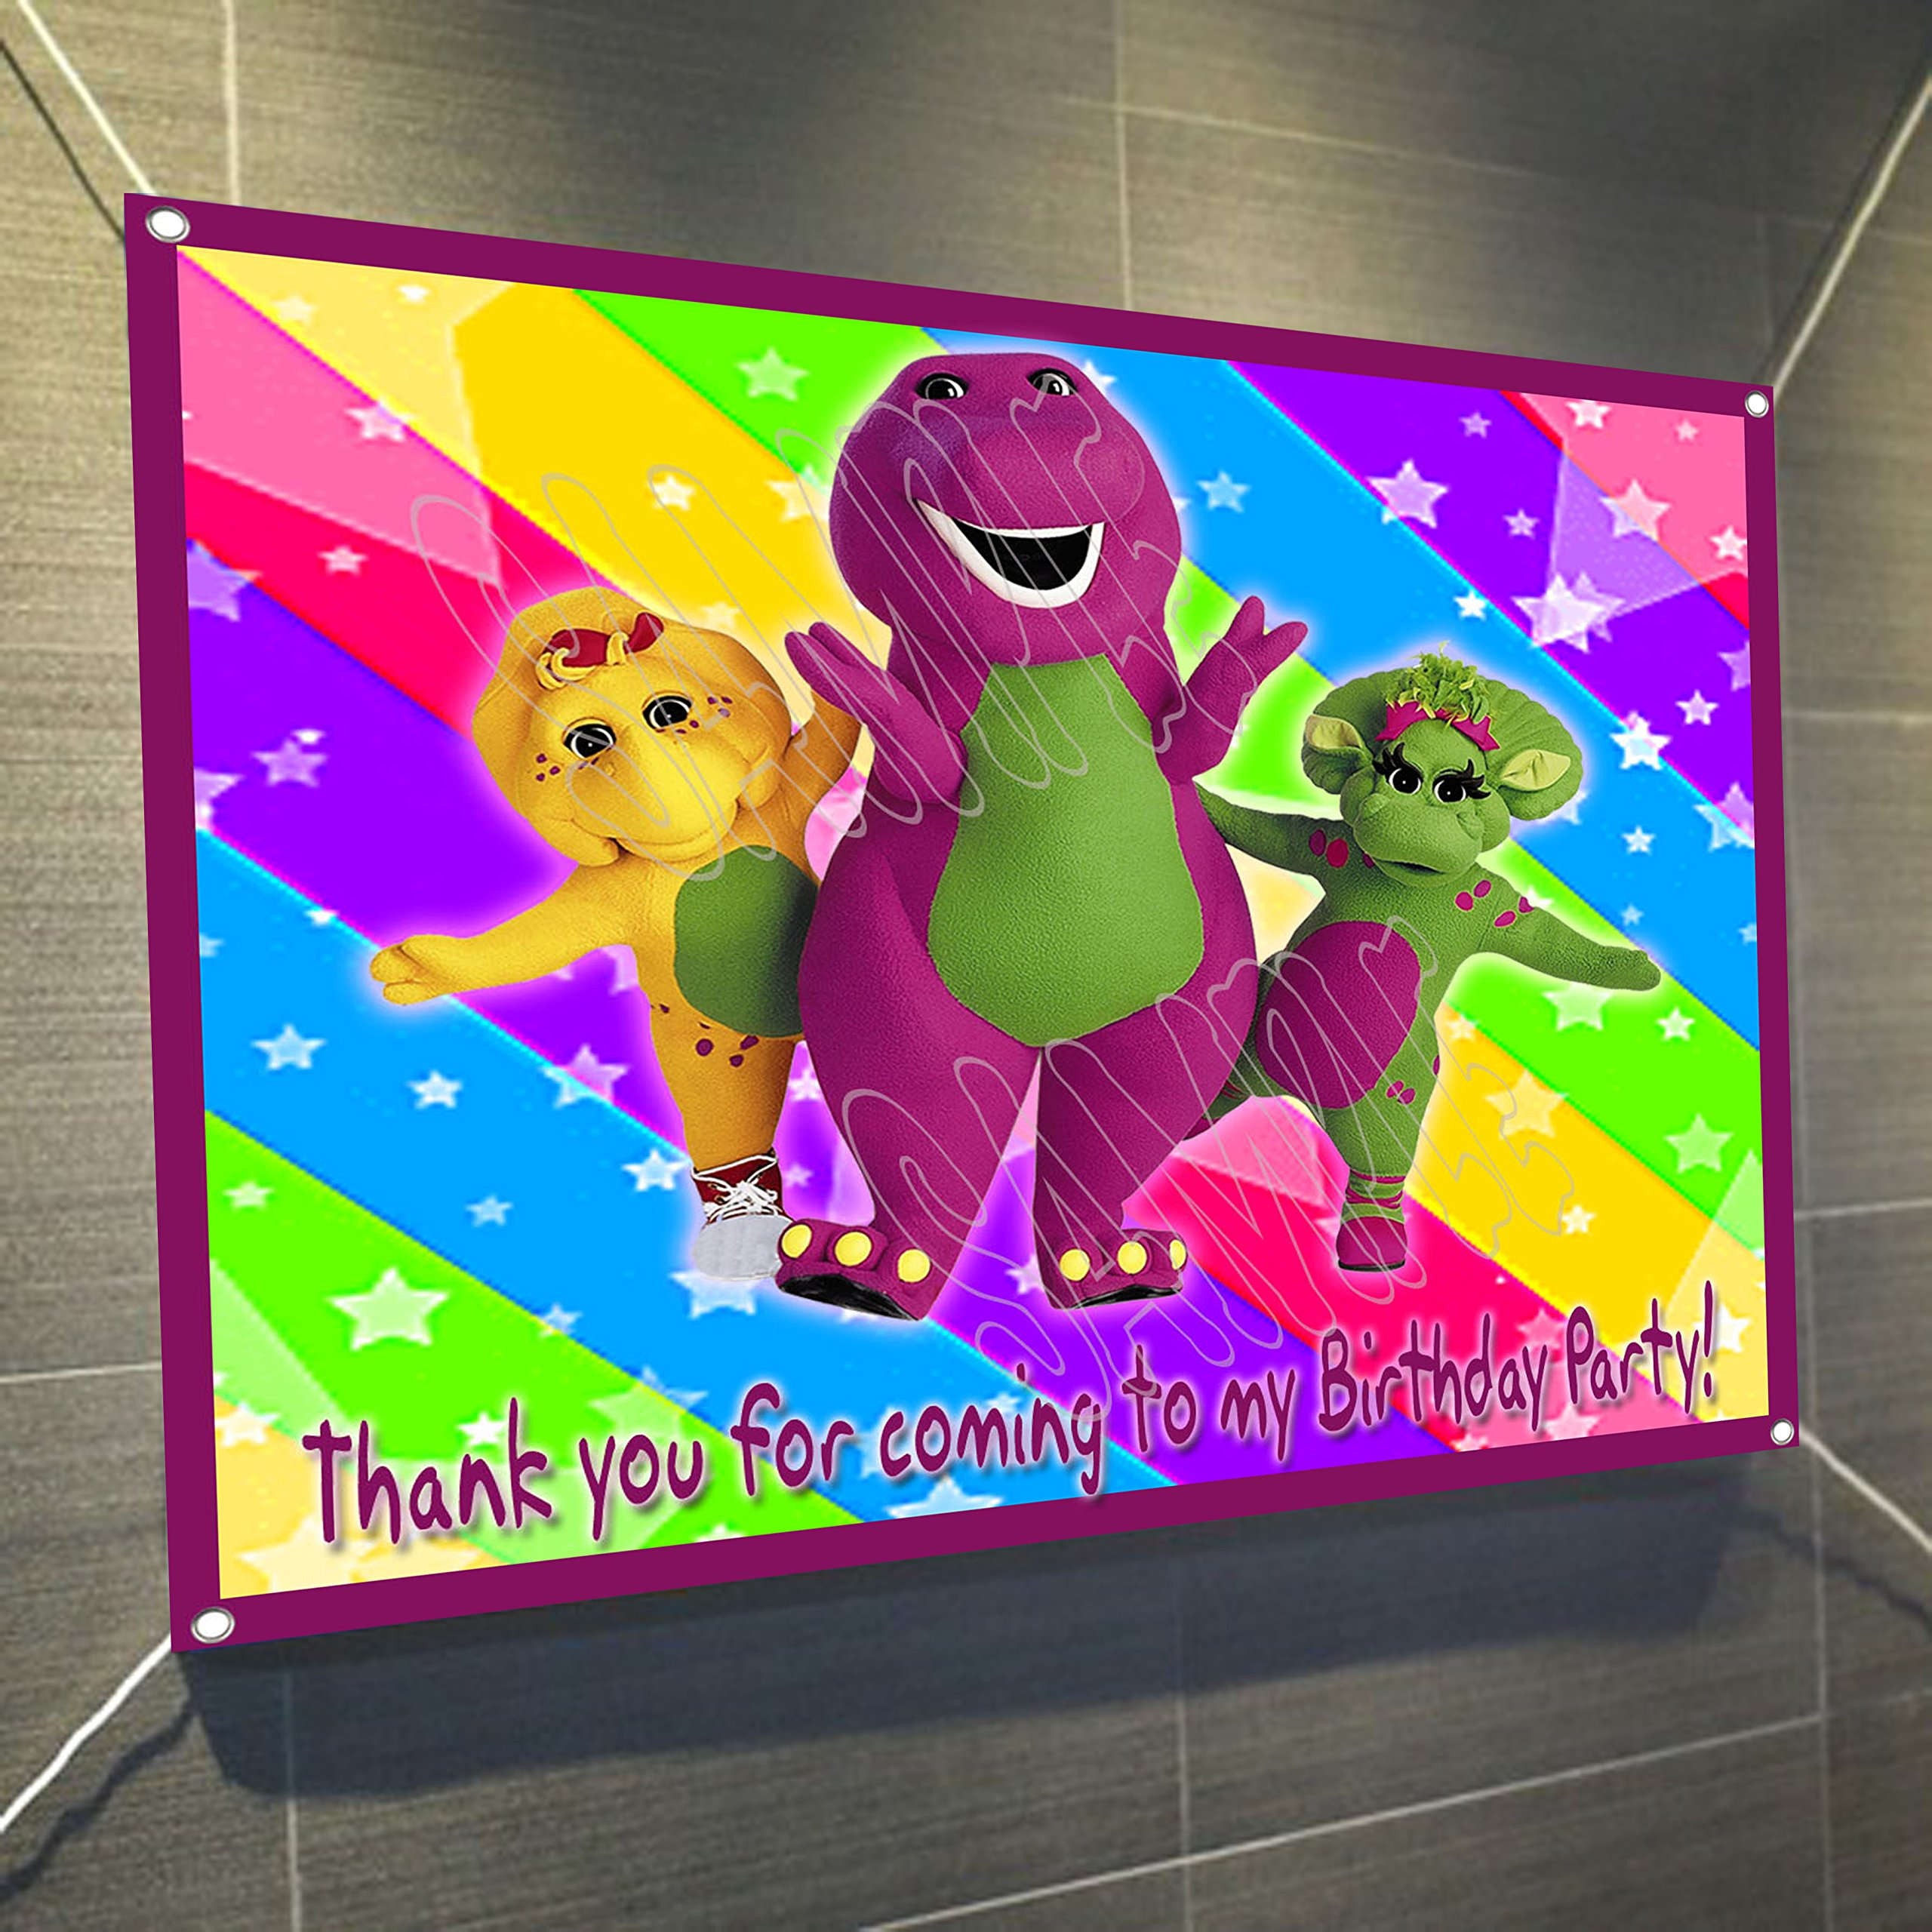 Barney Purple Dinosaur Large Vinyl Indoor or Outdoor Banner Sign Poster Backdrop, party favor decoration, 30'' x 24'', 2.5' x 2'